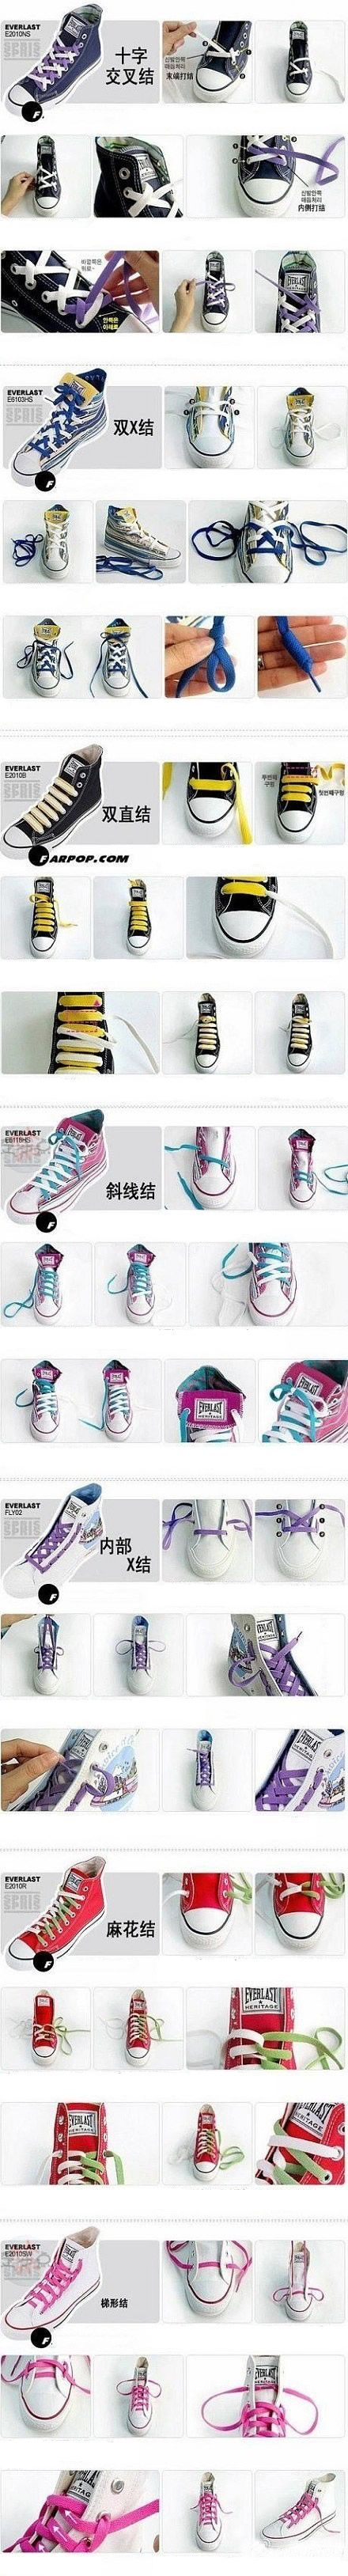 Converse clipart shoelace On Your images DIY new